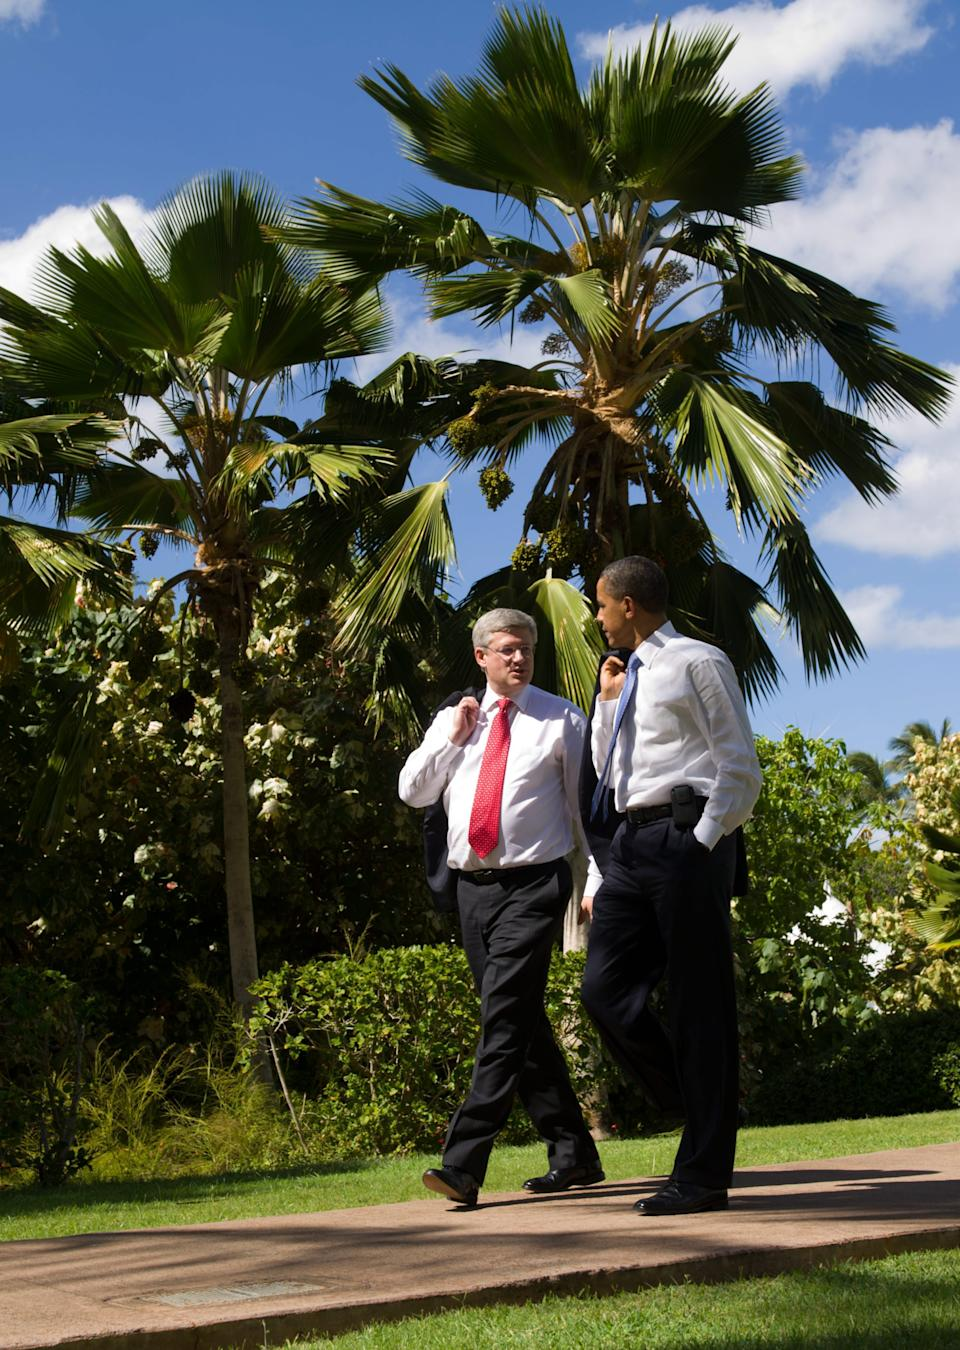 Prime Minister Stephen Harper meets with US President Barack Obama at the 2011 APEC Summit in Kapolei, Hawaii on Sunday, November 13, 2011. THE CANADIAN PRESS/Sean Kilpatrick